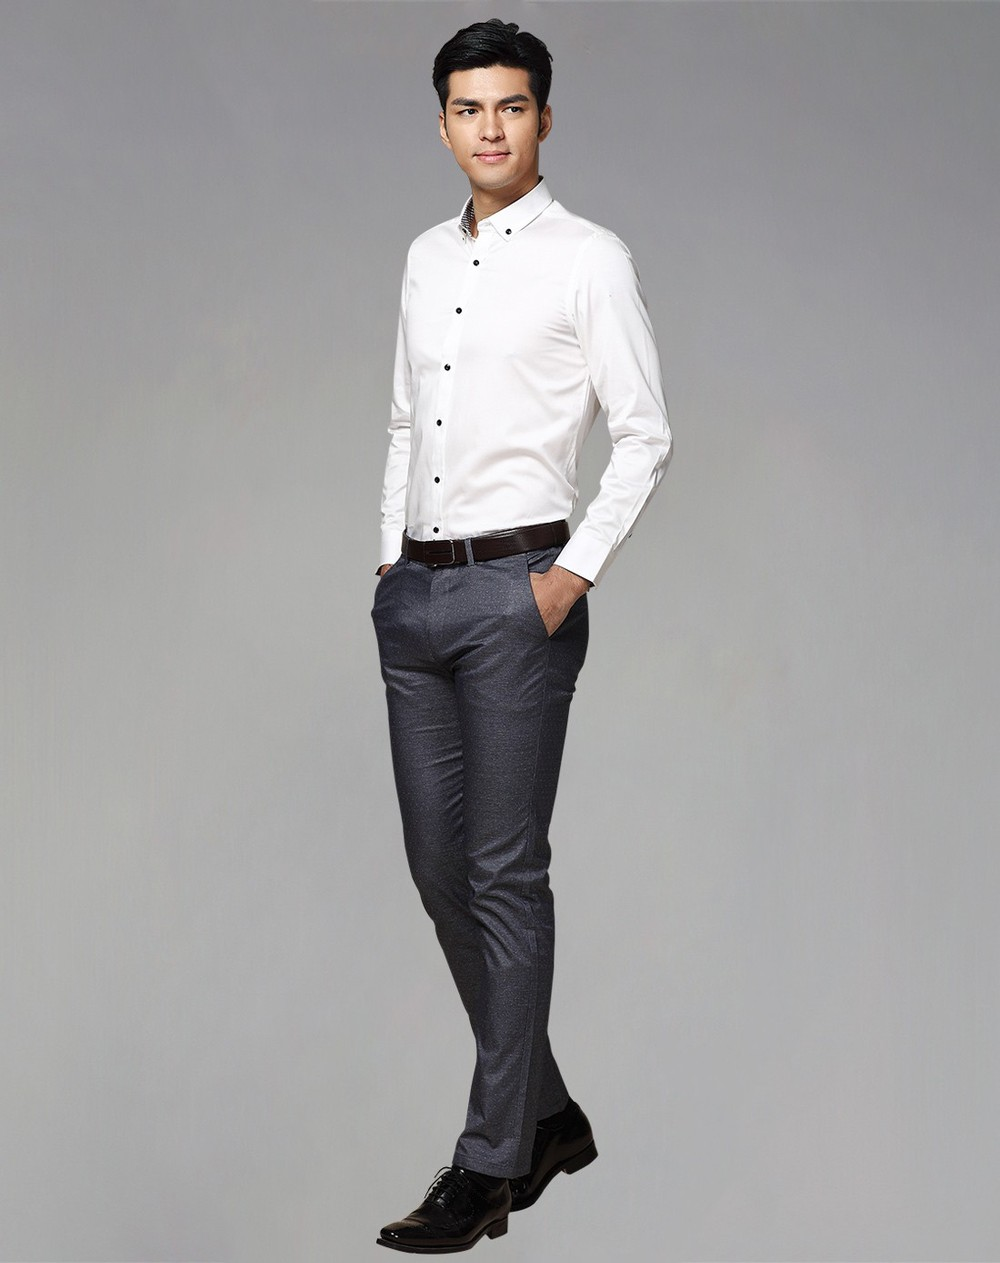 Wholesale Custom Design Dress Shirt Cotton Formal Long Sleeve Mens Dress Shirt High Quality